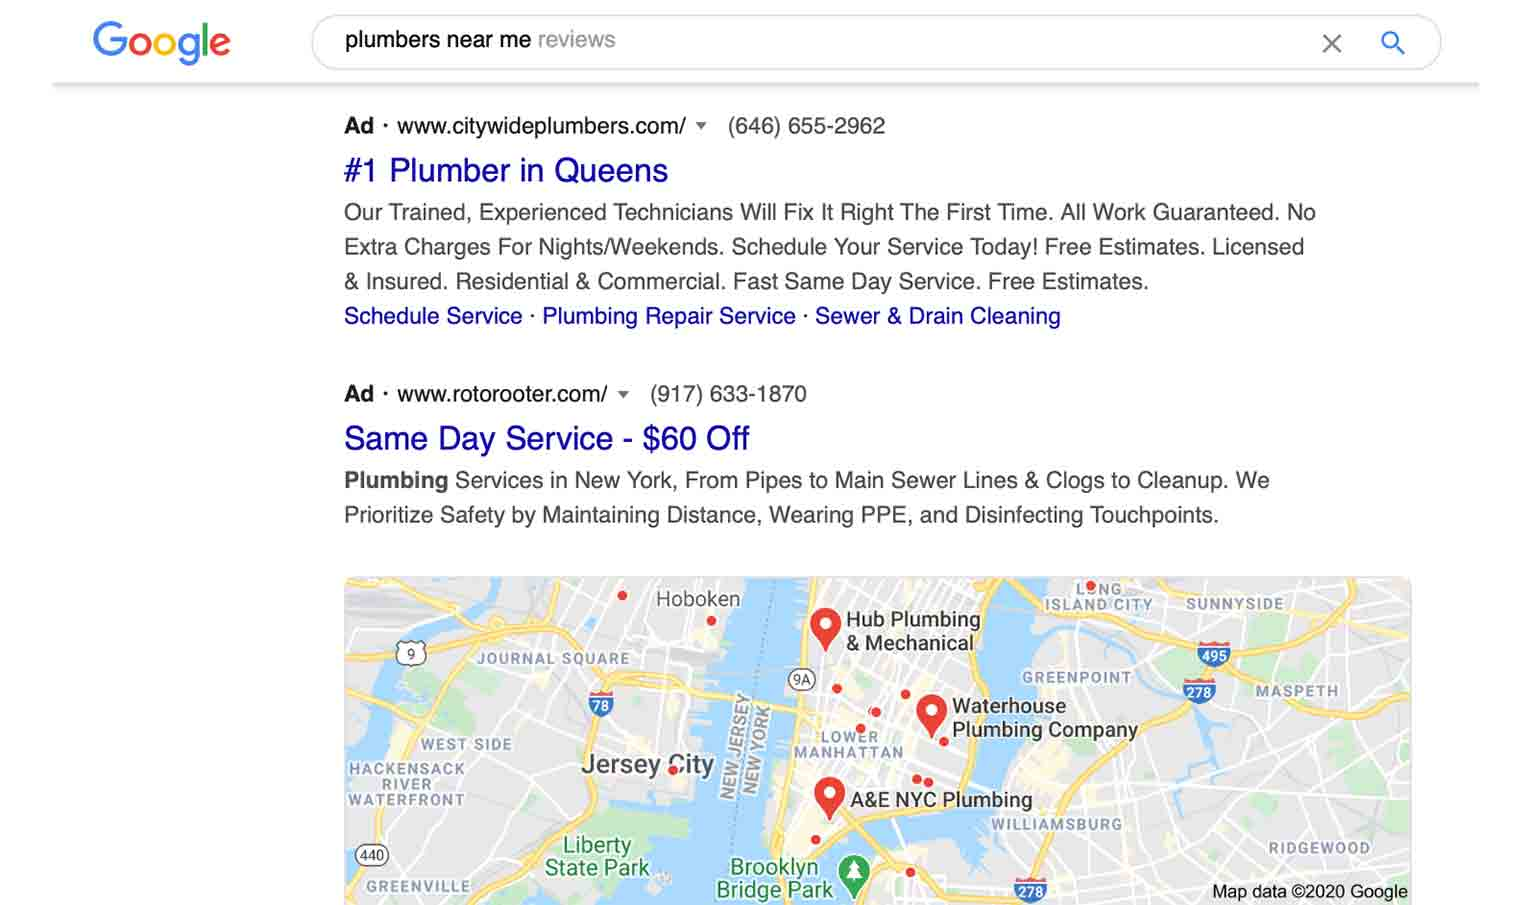 You also can optimize your PPC campaigns for local searches.